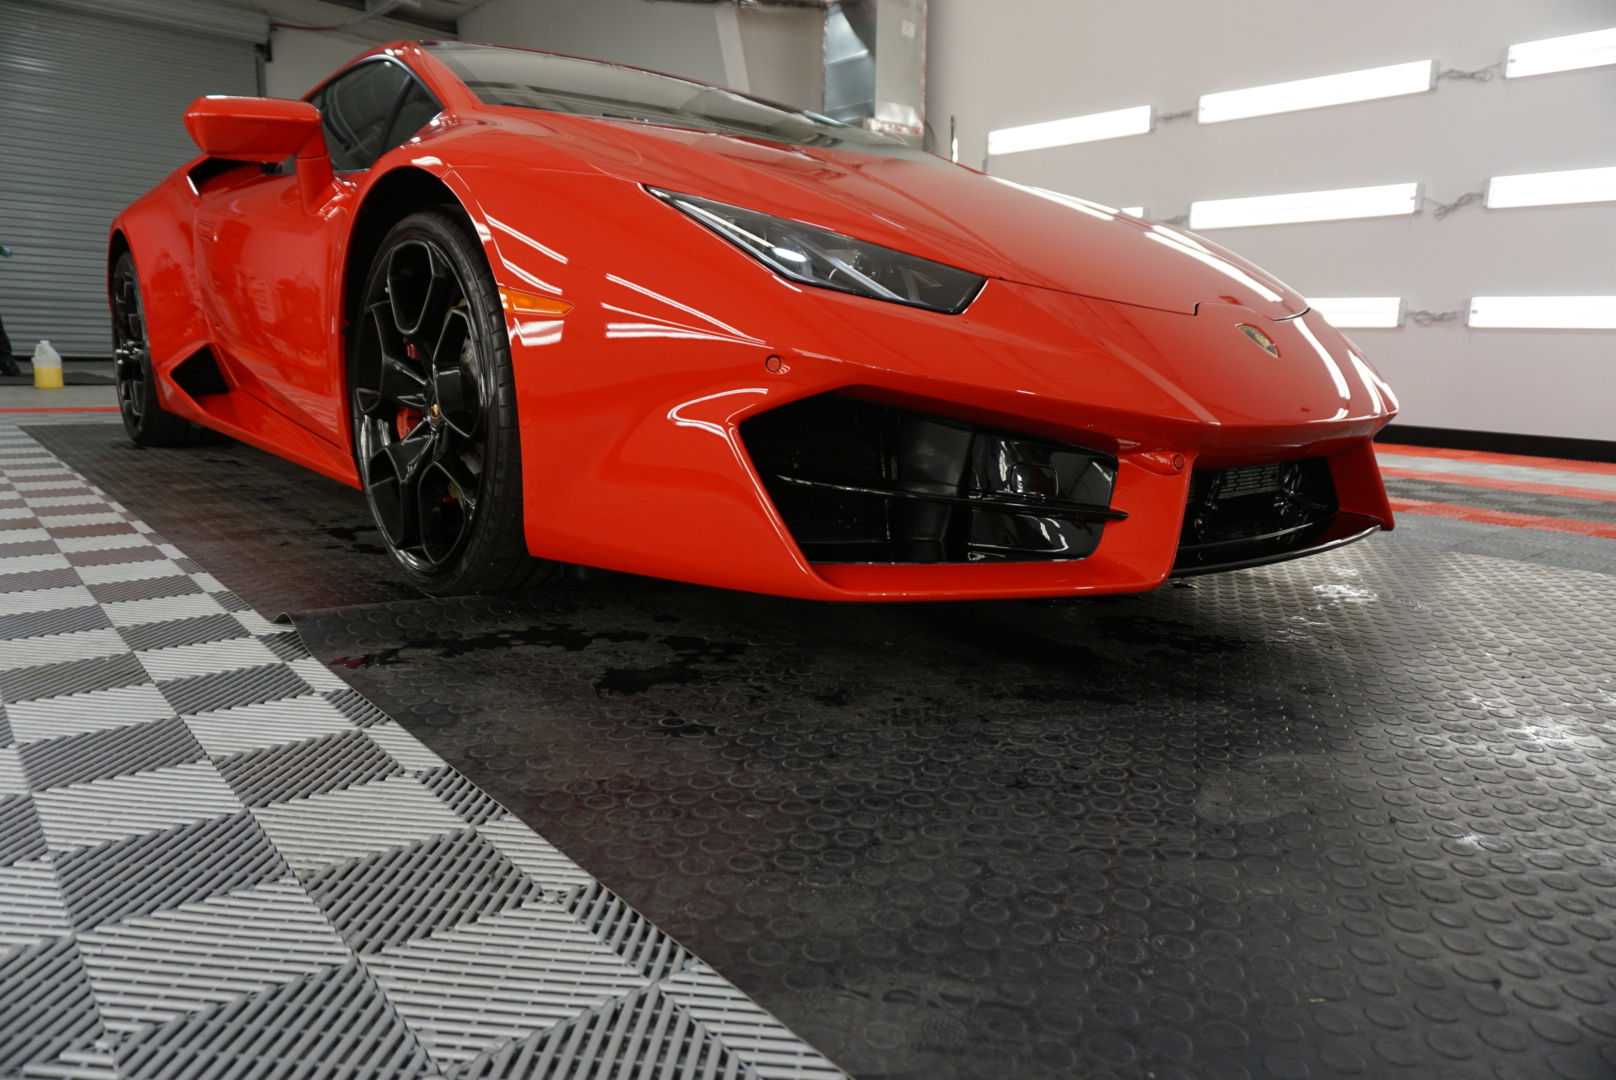 Full Detail of a 2019 Lamborghini Huracan